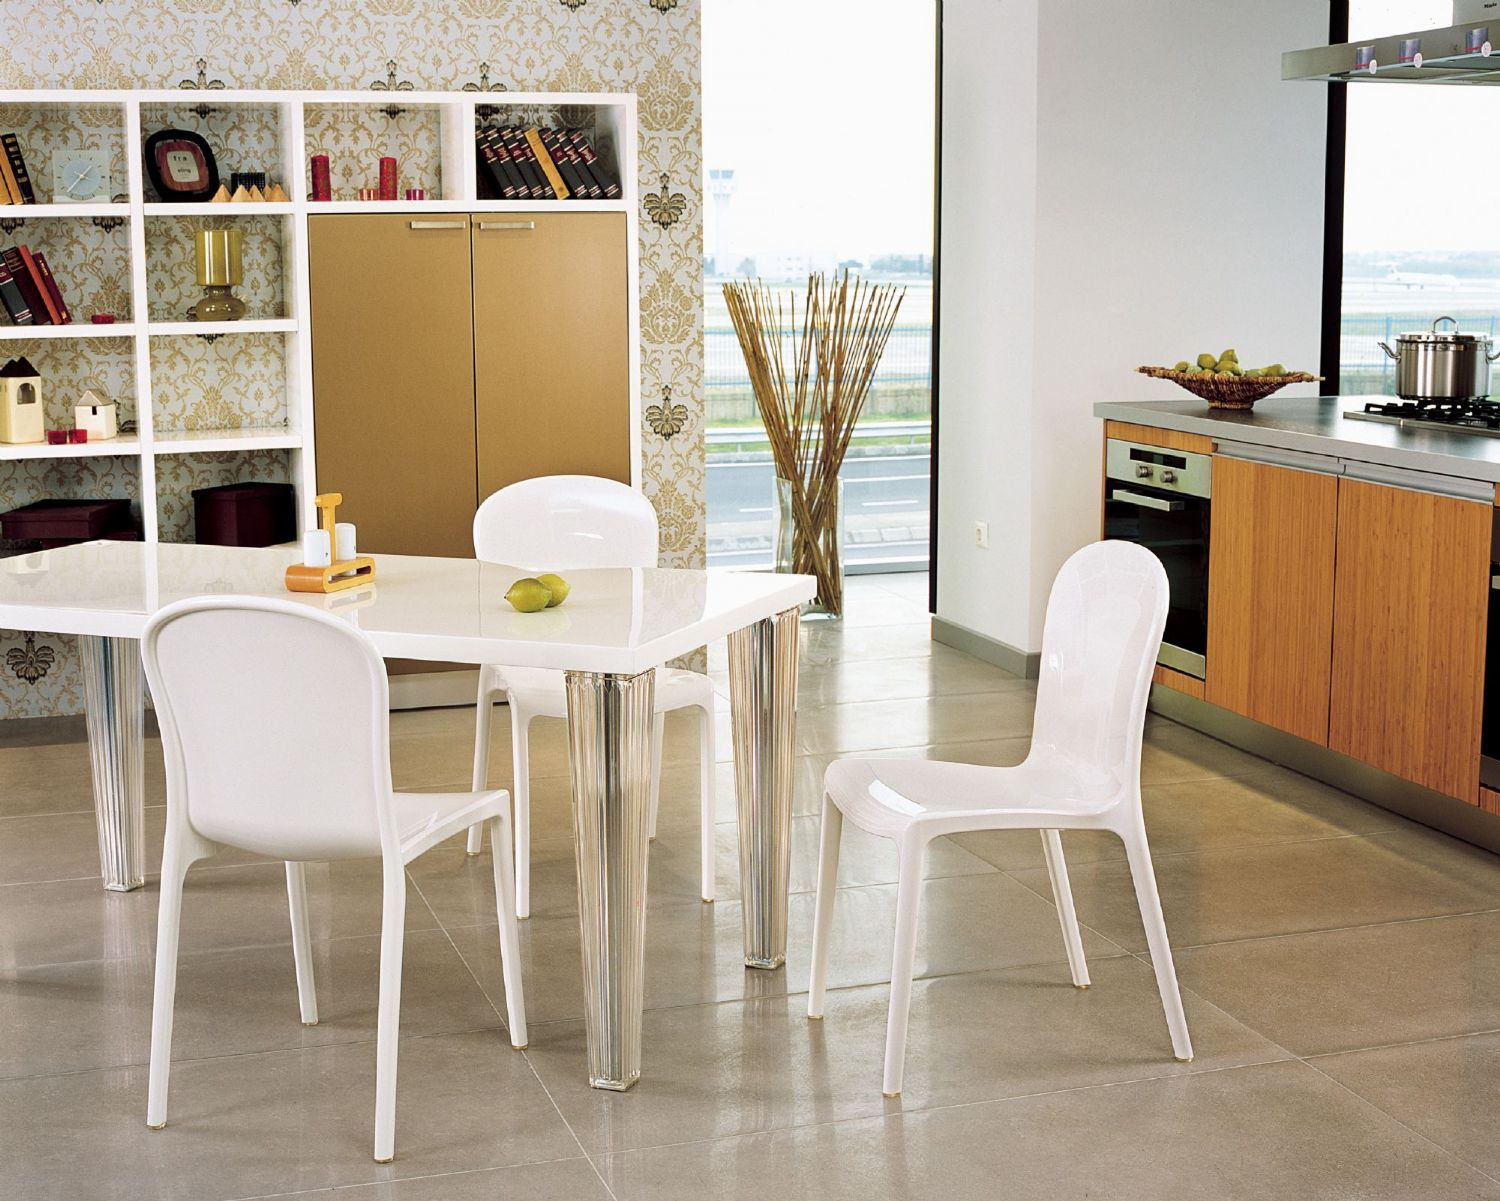 Victoria Polycarbonate Modern Dining Chair Transparent Gray ISP033-TGRY - 10